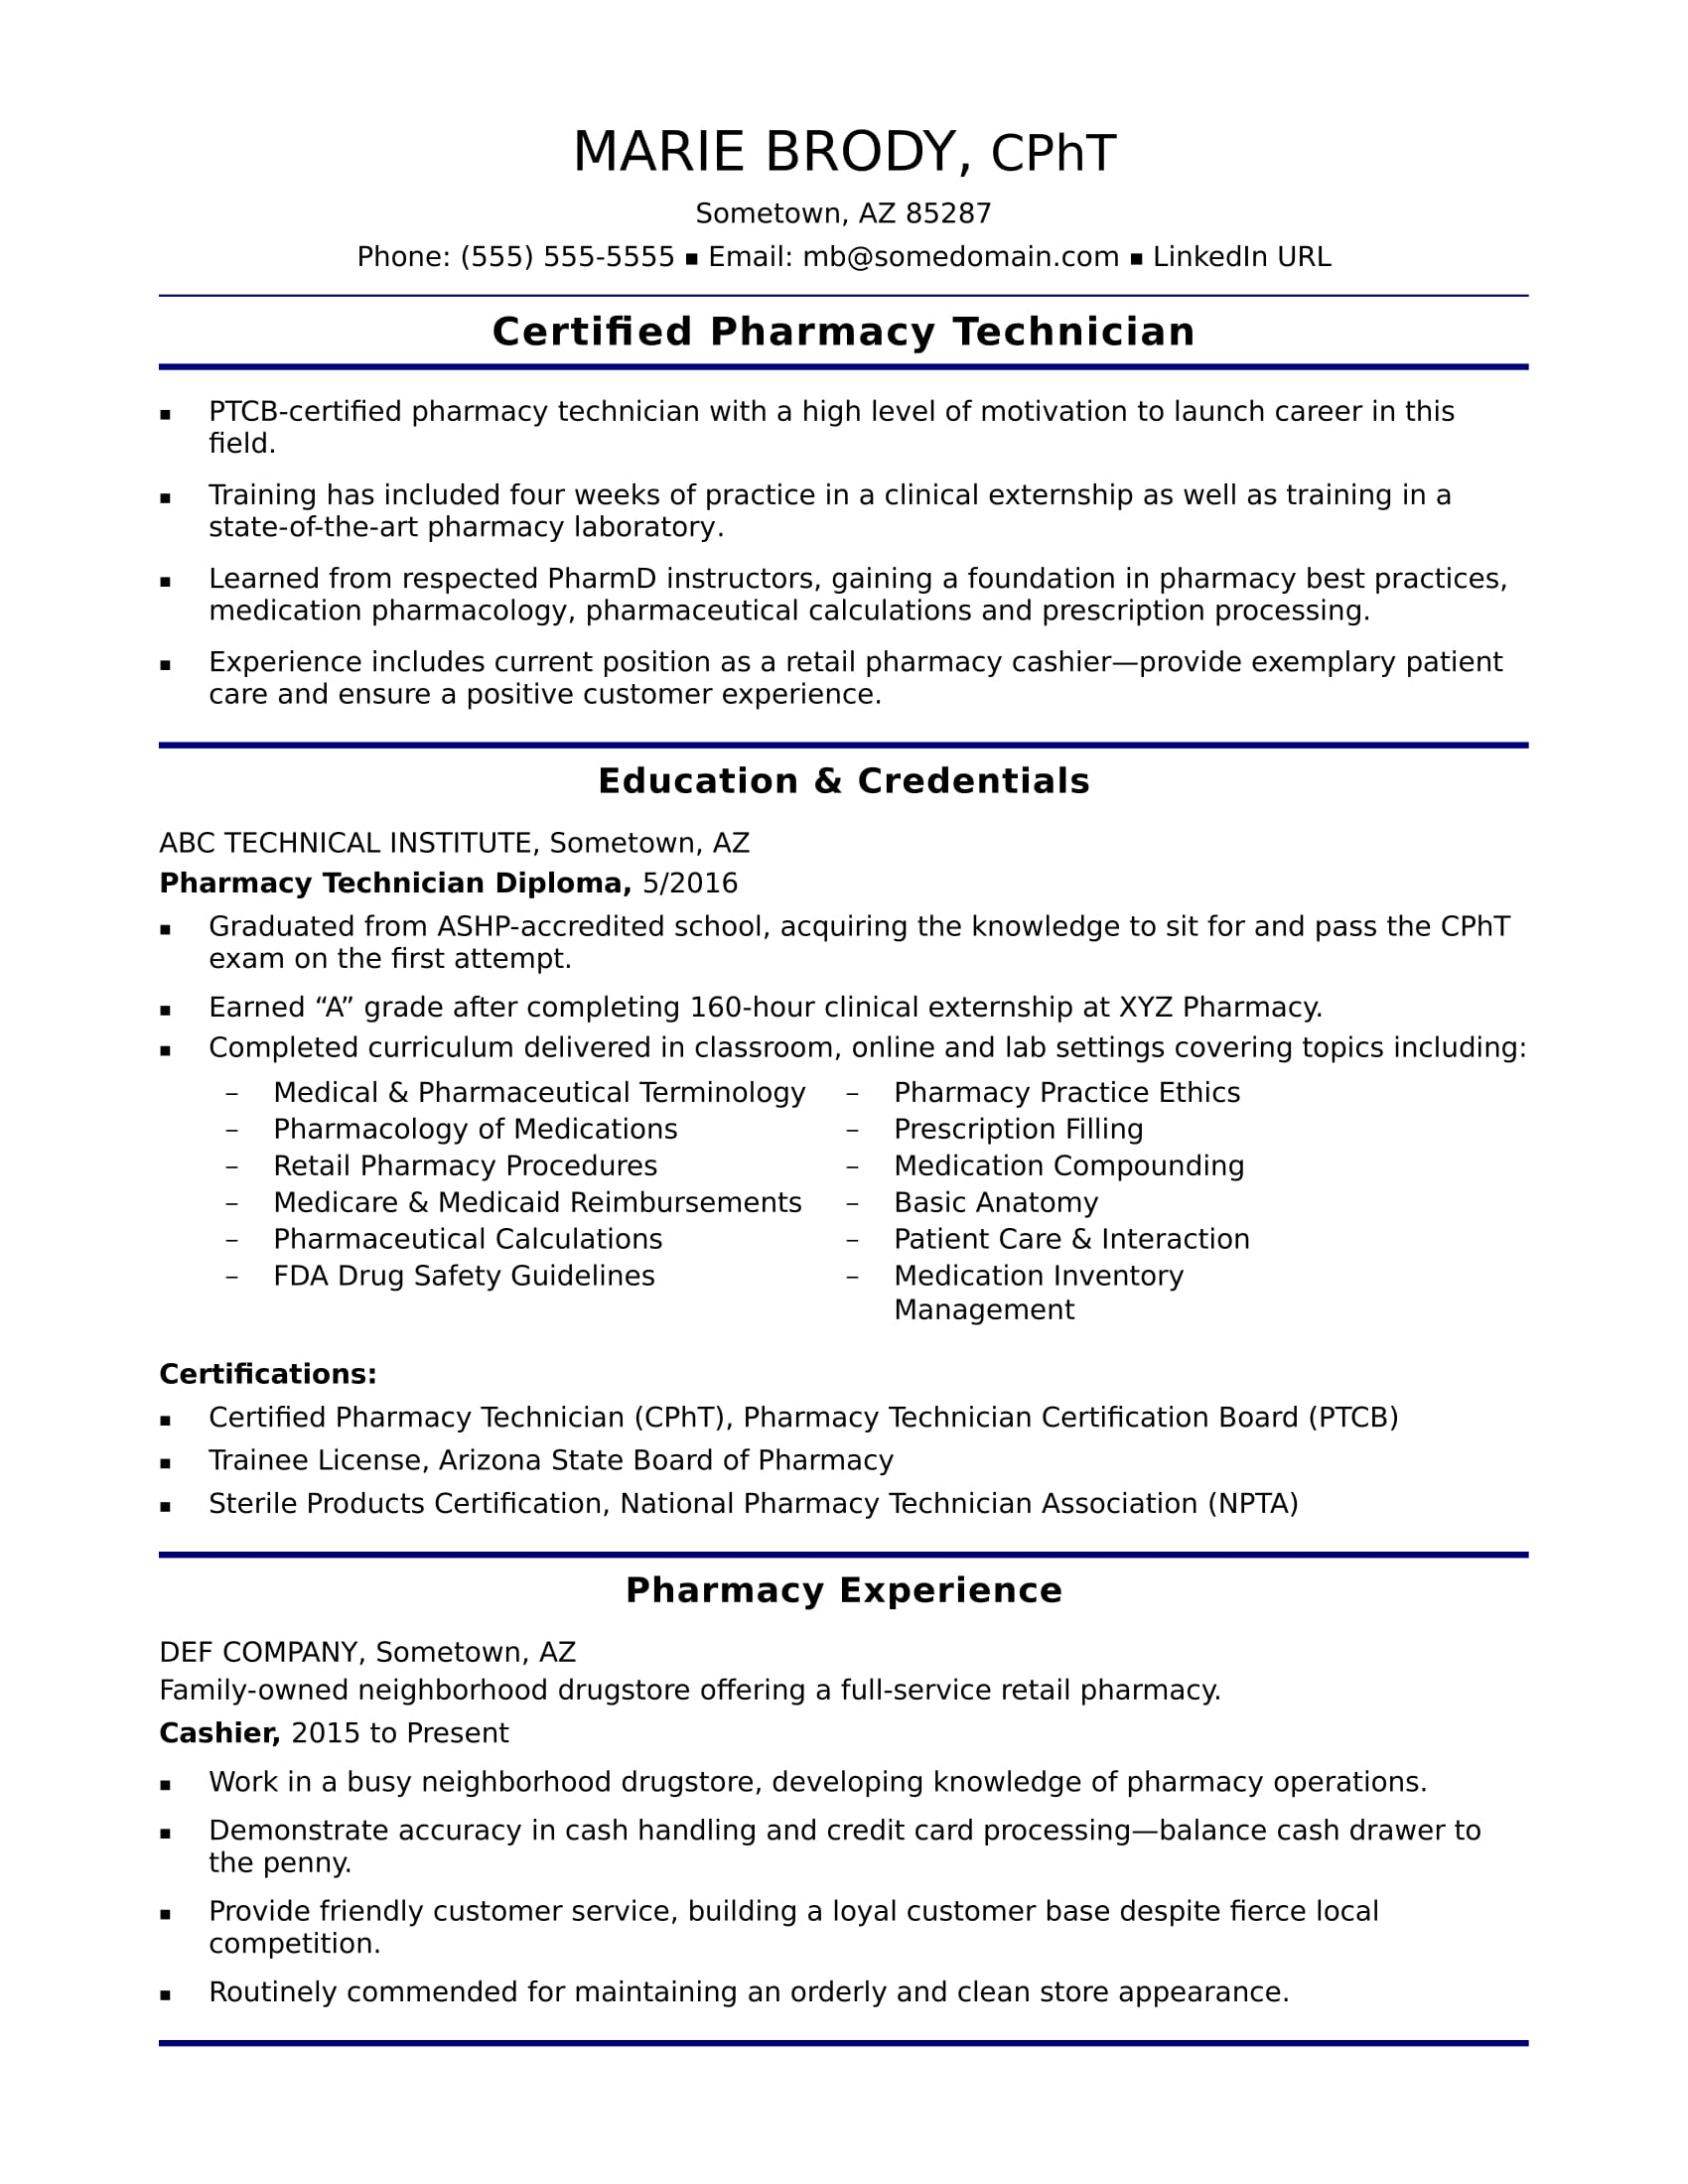 entry level pharmacy technician resume sample monster cpr and first aid certification Resume Pharmacy Technician Resume